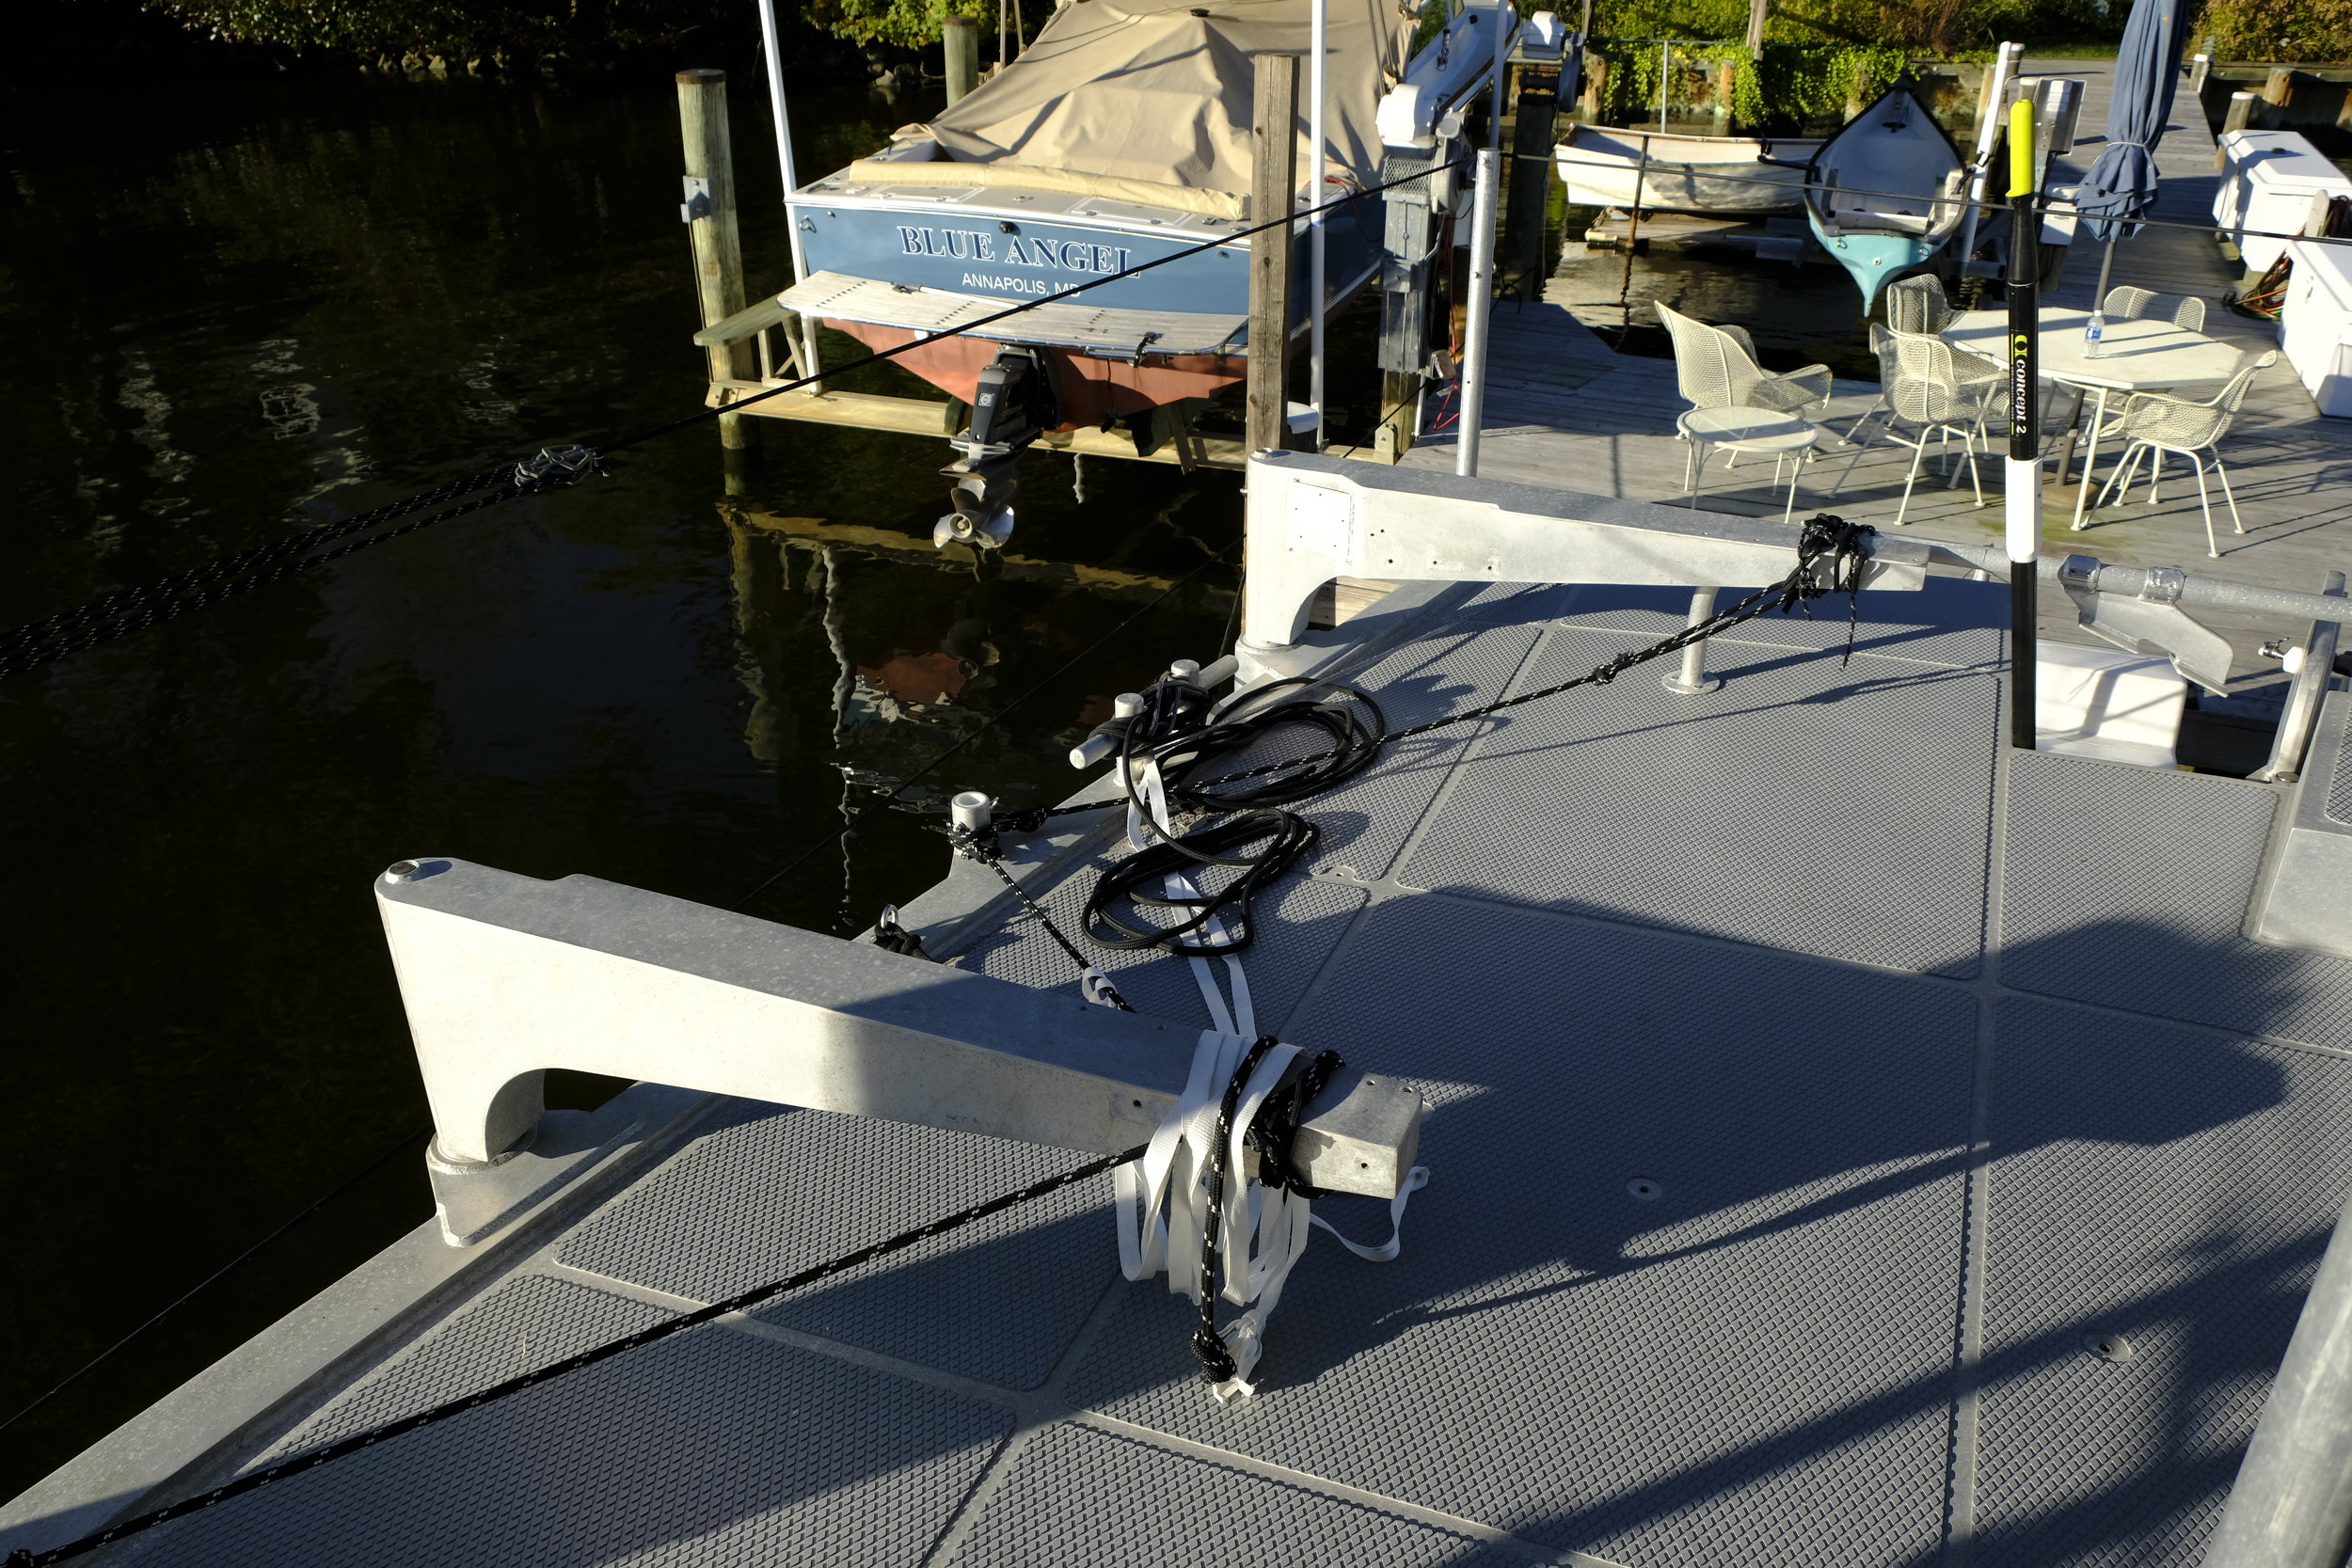 The cradle arms for the RIB swing out to hold the dinghy off the side of the boat, creating a large social area on the aft deck.